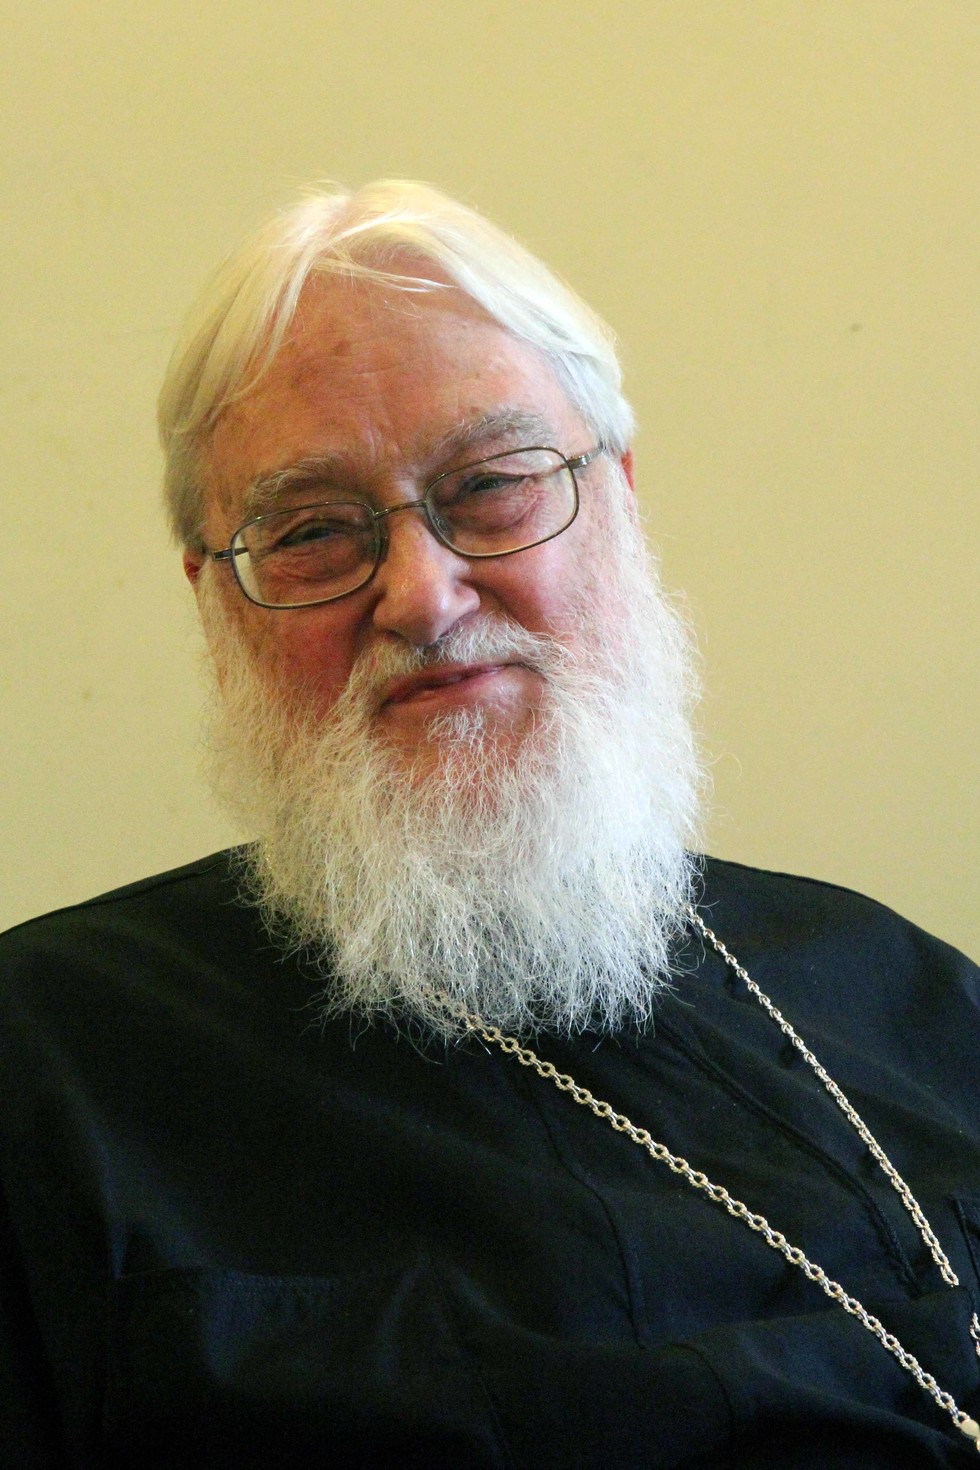 Metropolitan Kallistos (Ware), Professor of Theology at the University of Oxford in 1966-2001